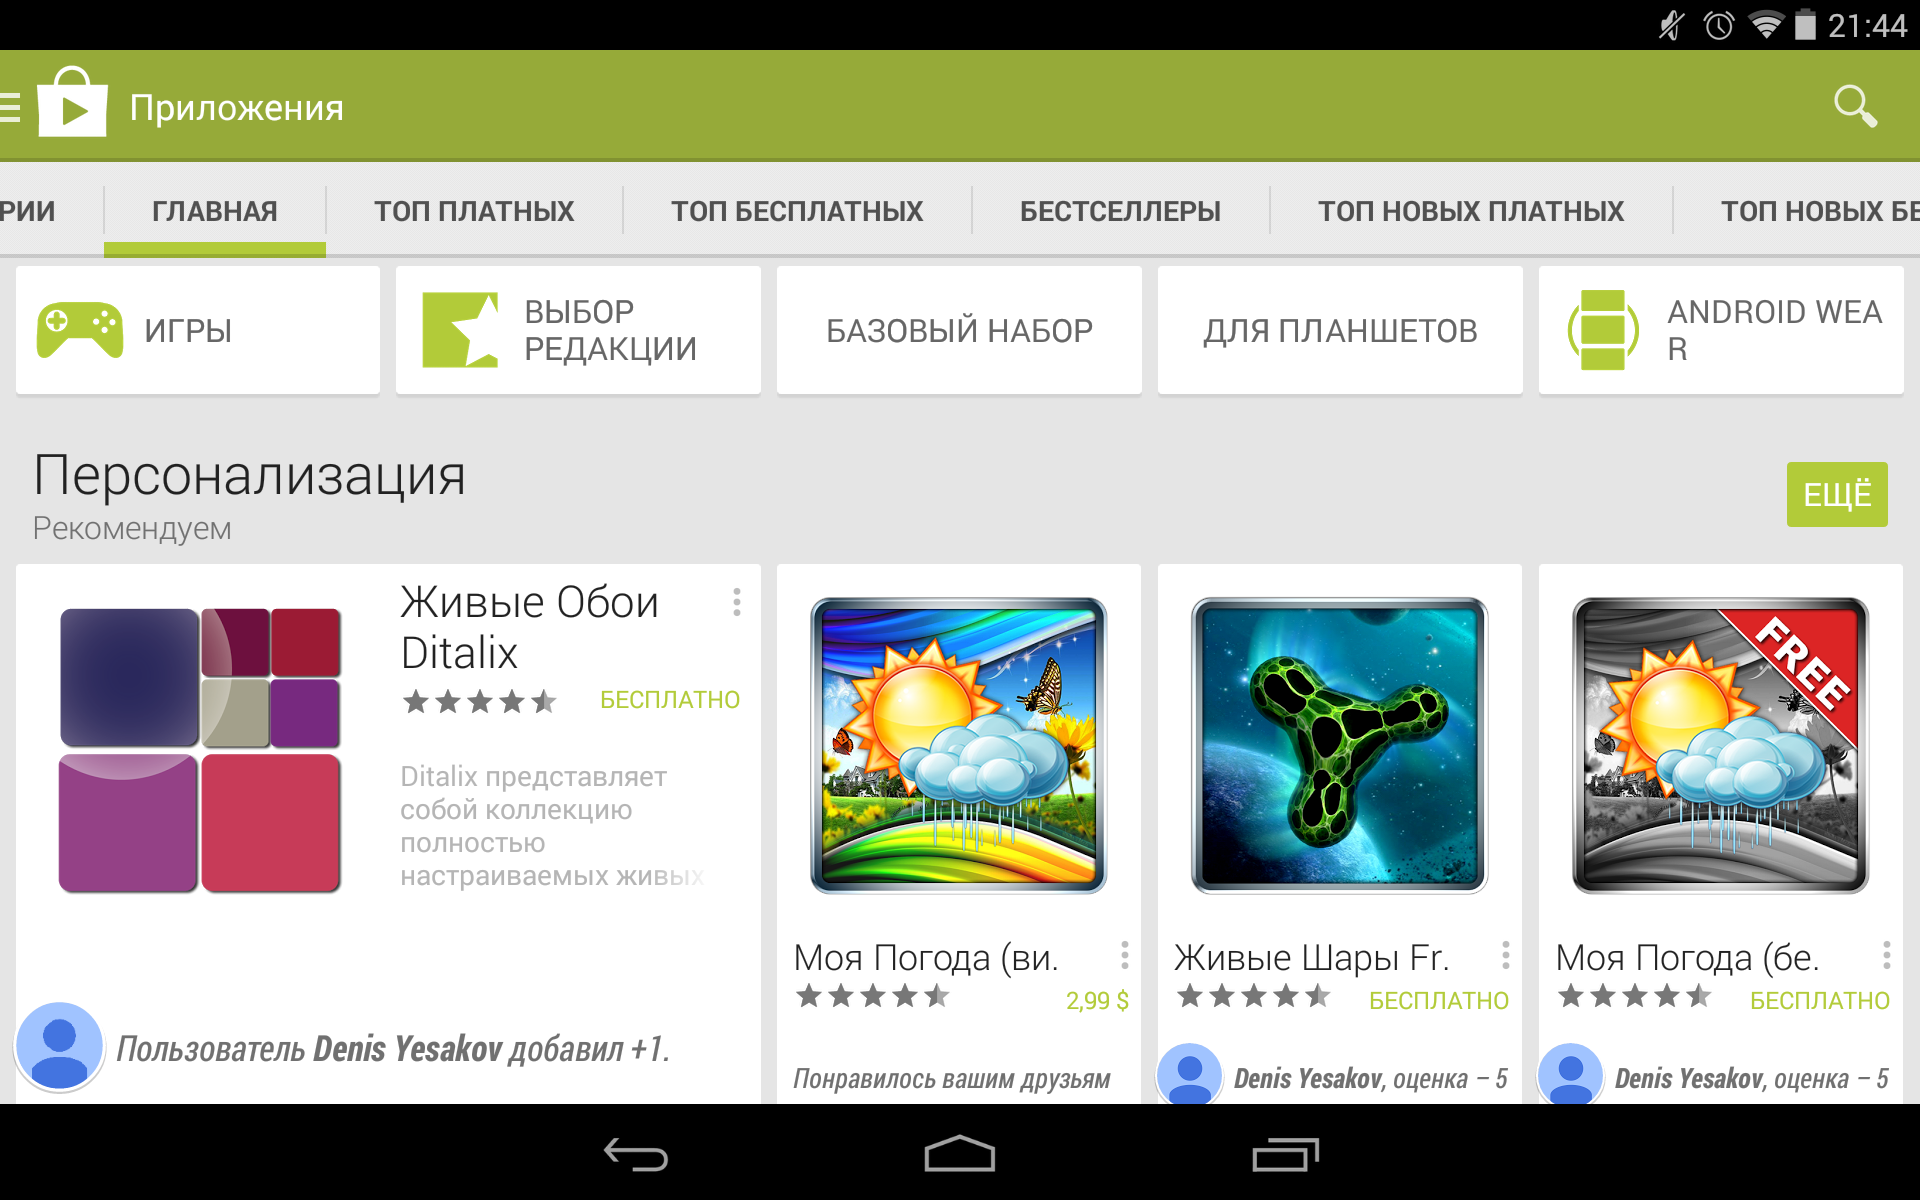 Mail.ru - Email App - Apps on Google Play